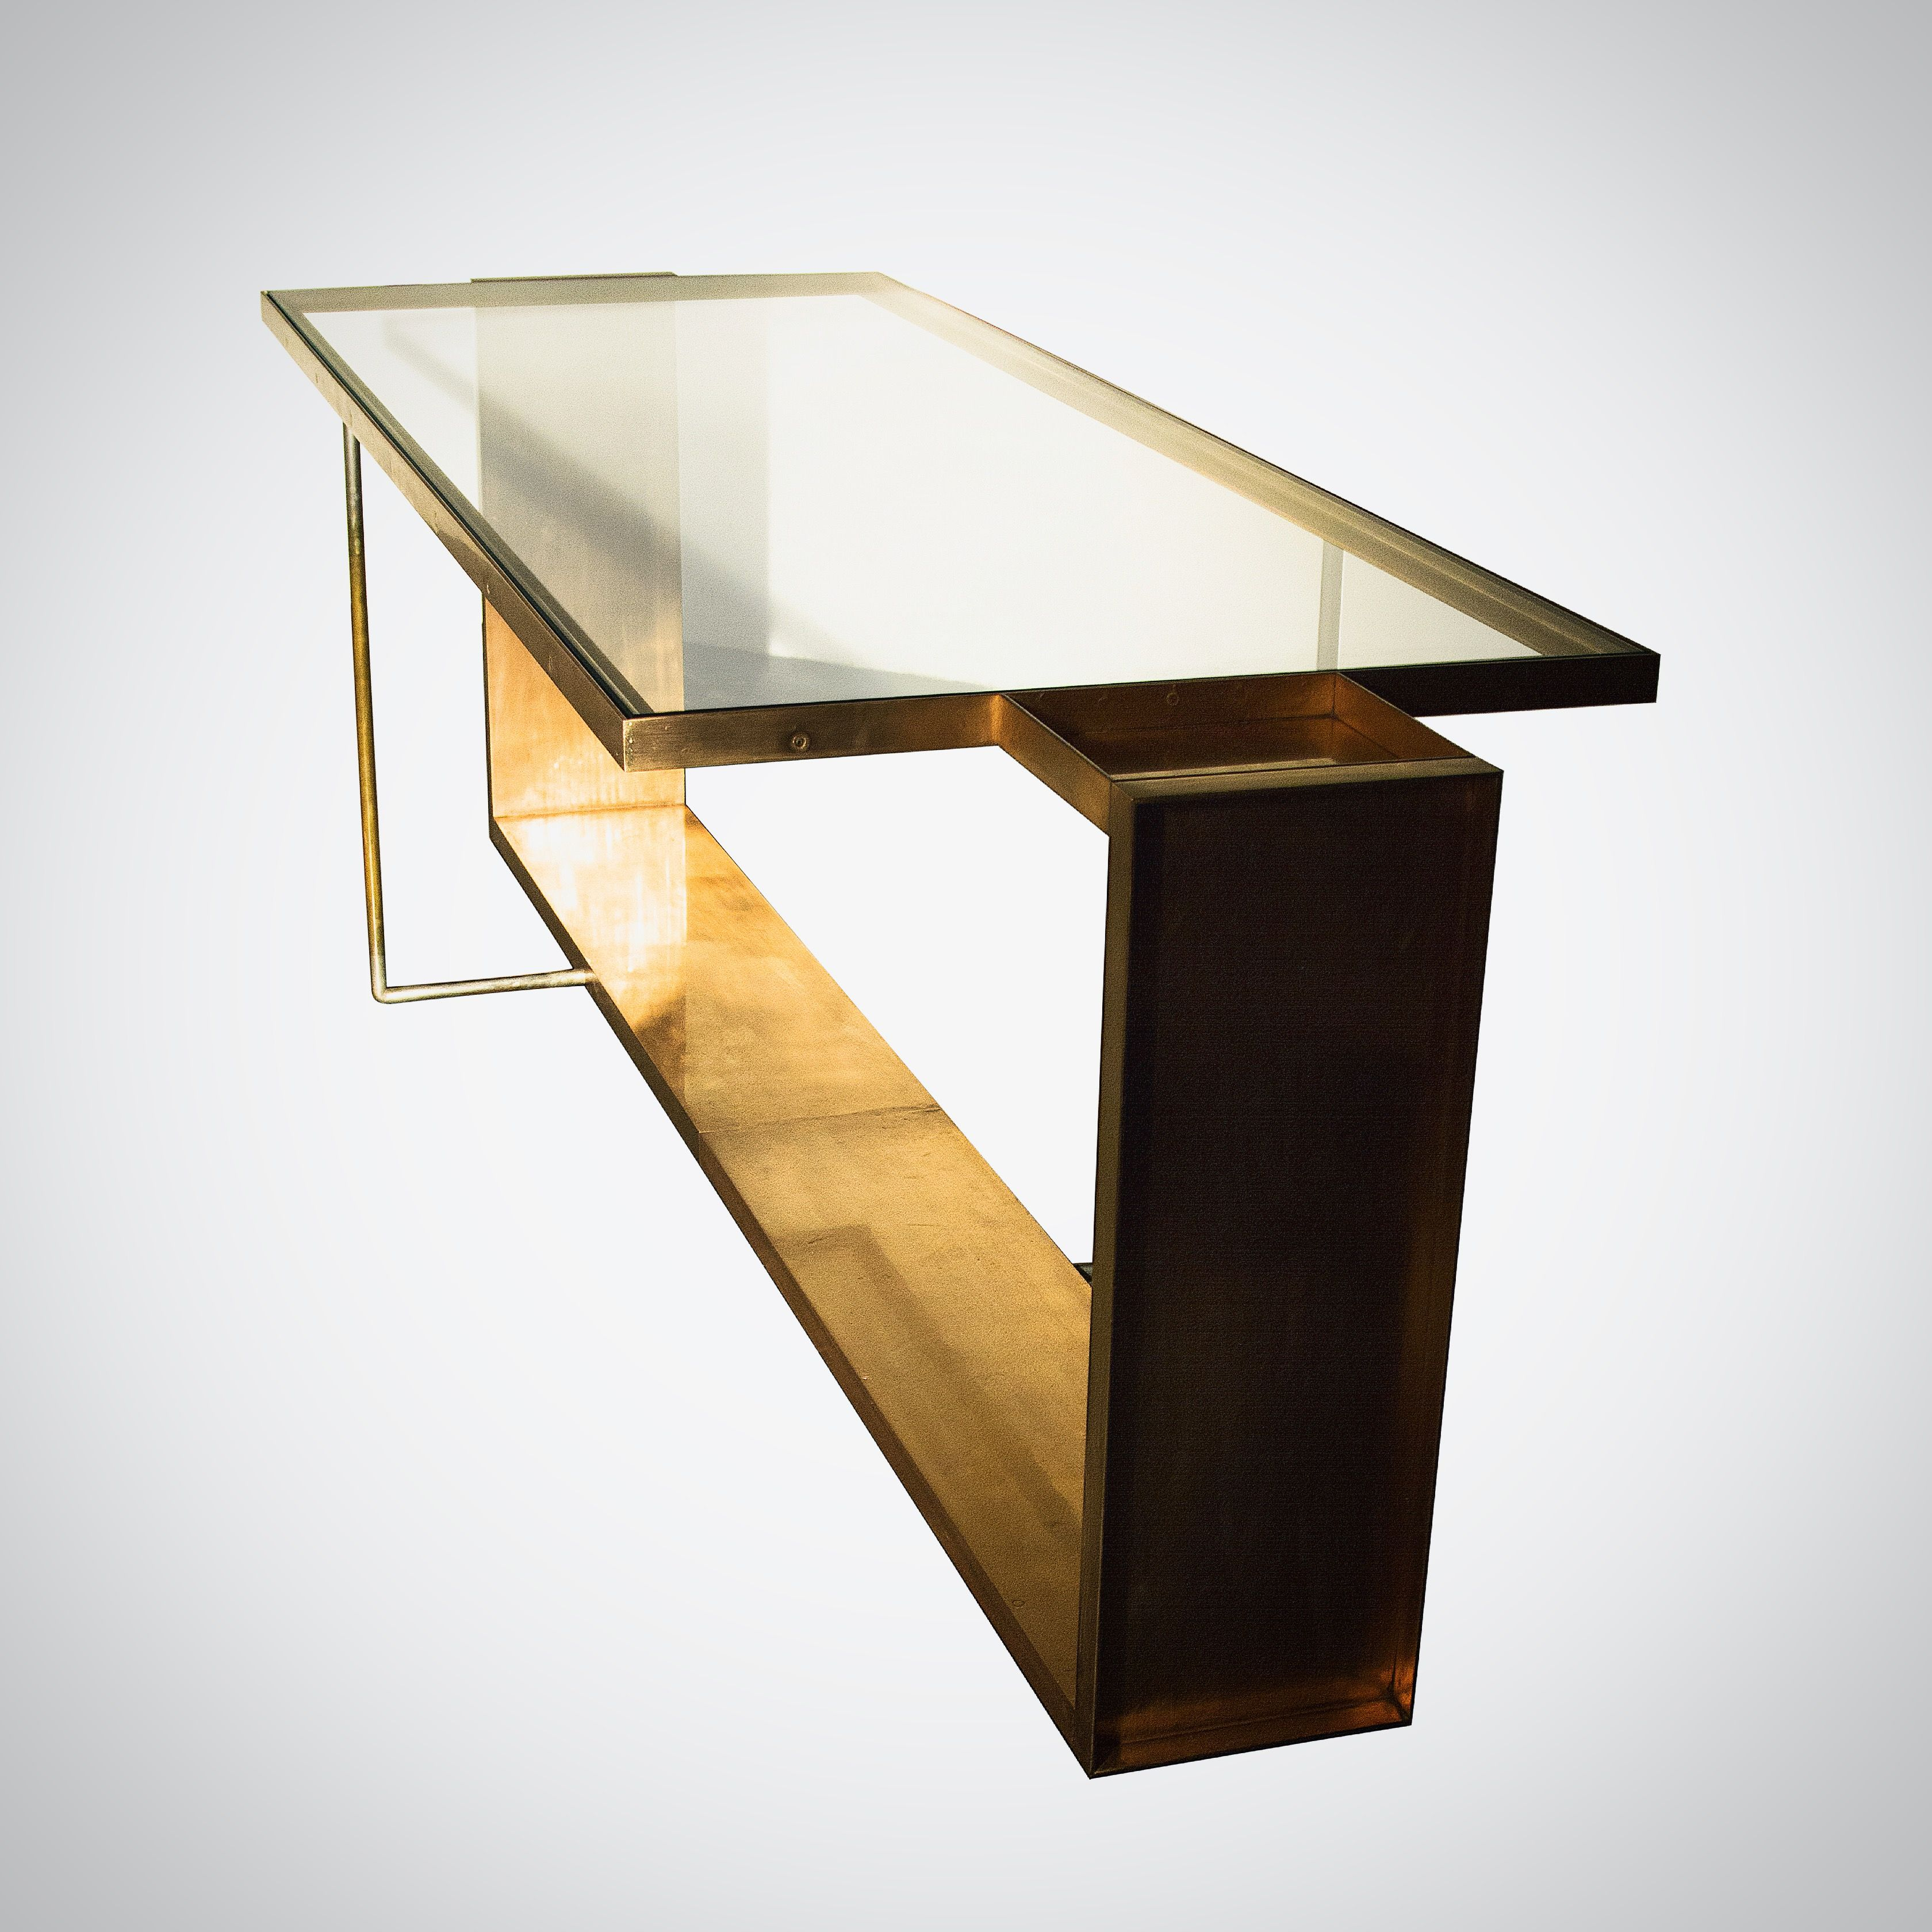 Juell By Privatiselectionem Com Side Table With Crystal Glass Top And Copper Plated Steel Structure Product Design By P Table Design Coffee Table Side Table [ 3360 x 3360 Pixel ]